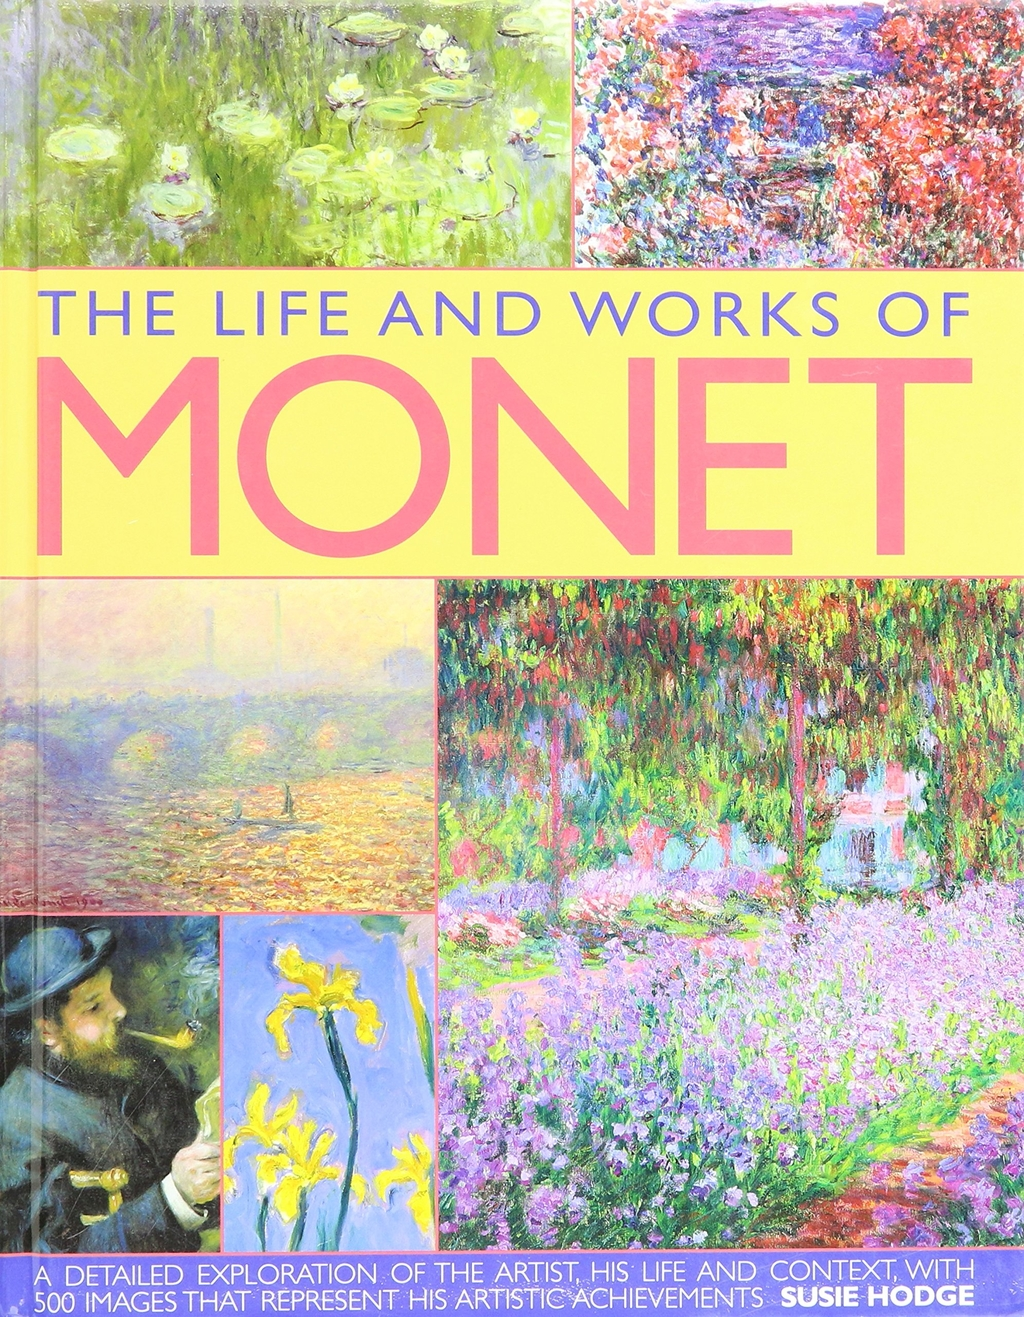 THE LIFE AND WORKS OF MONET